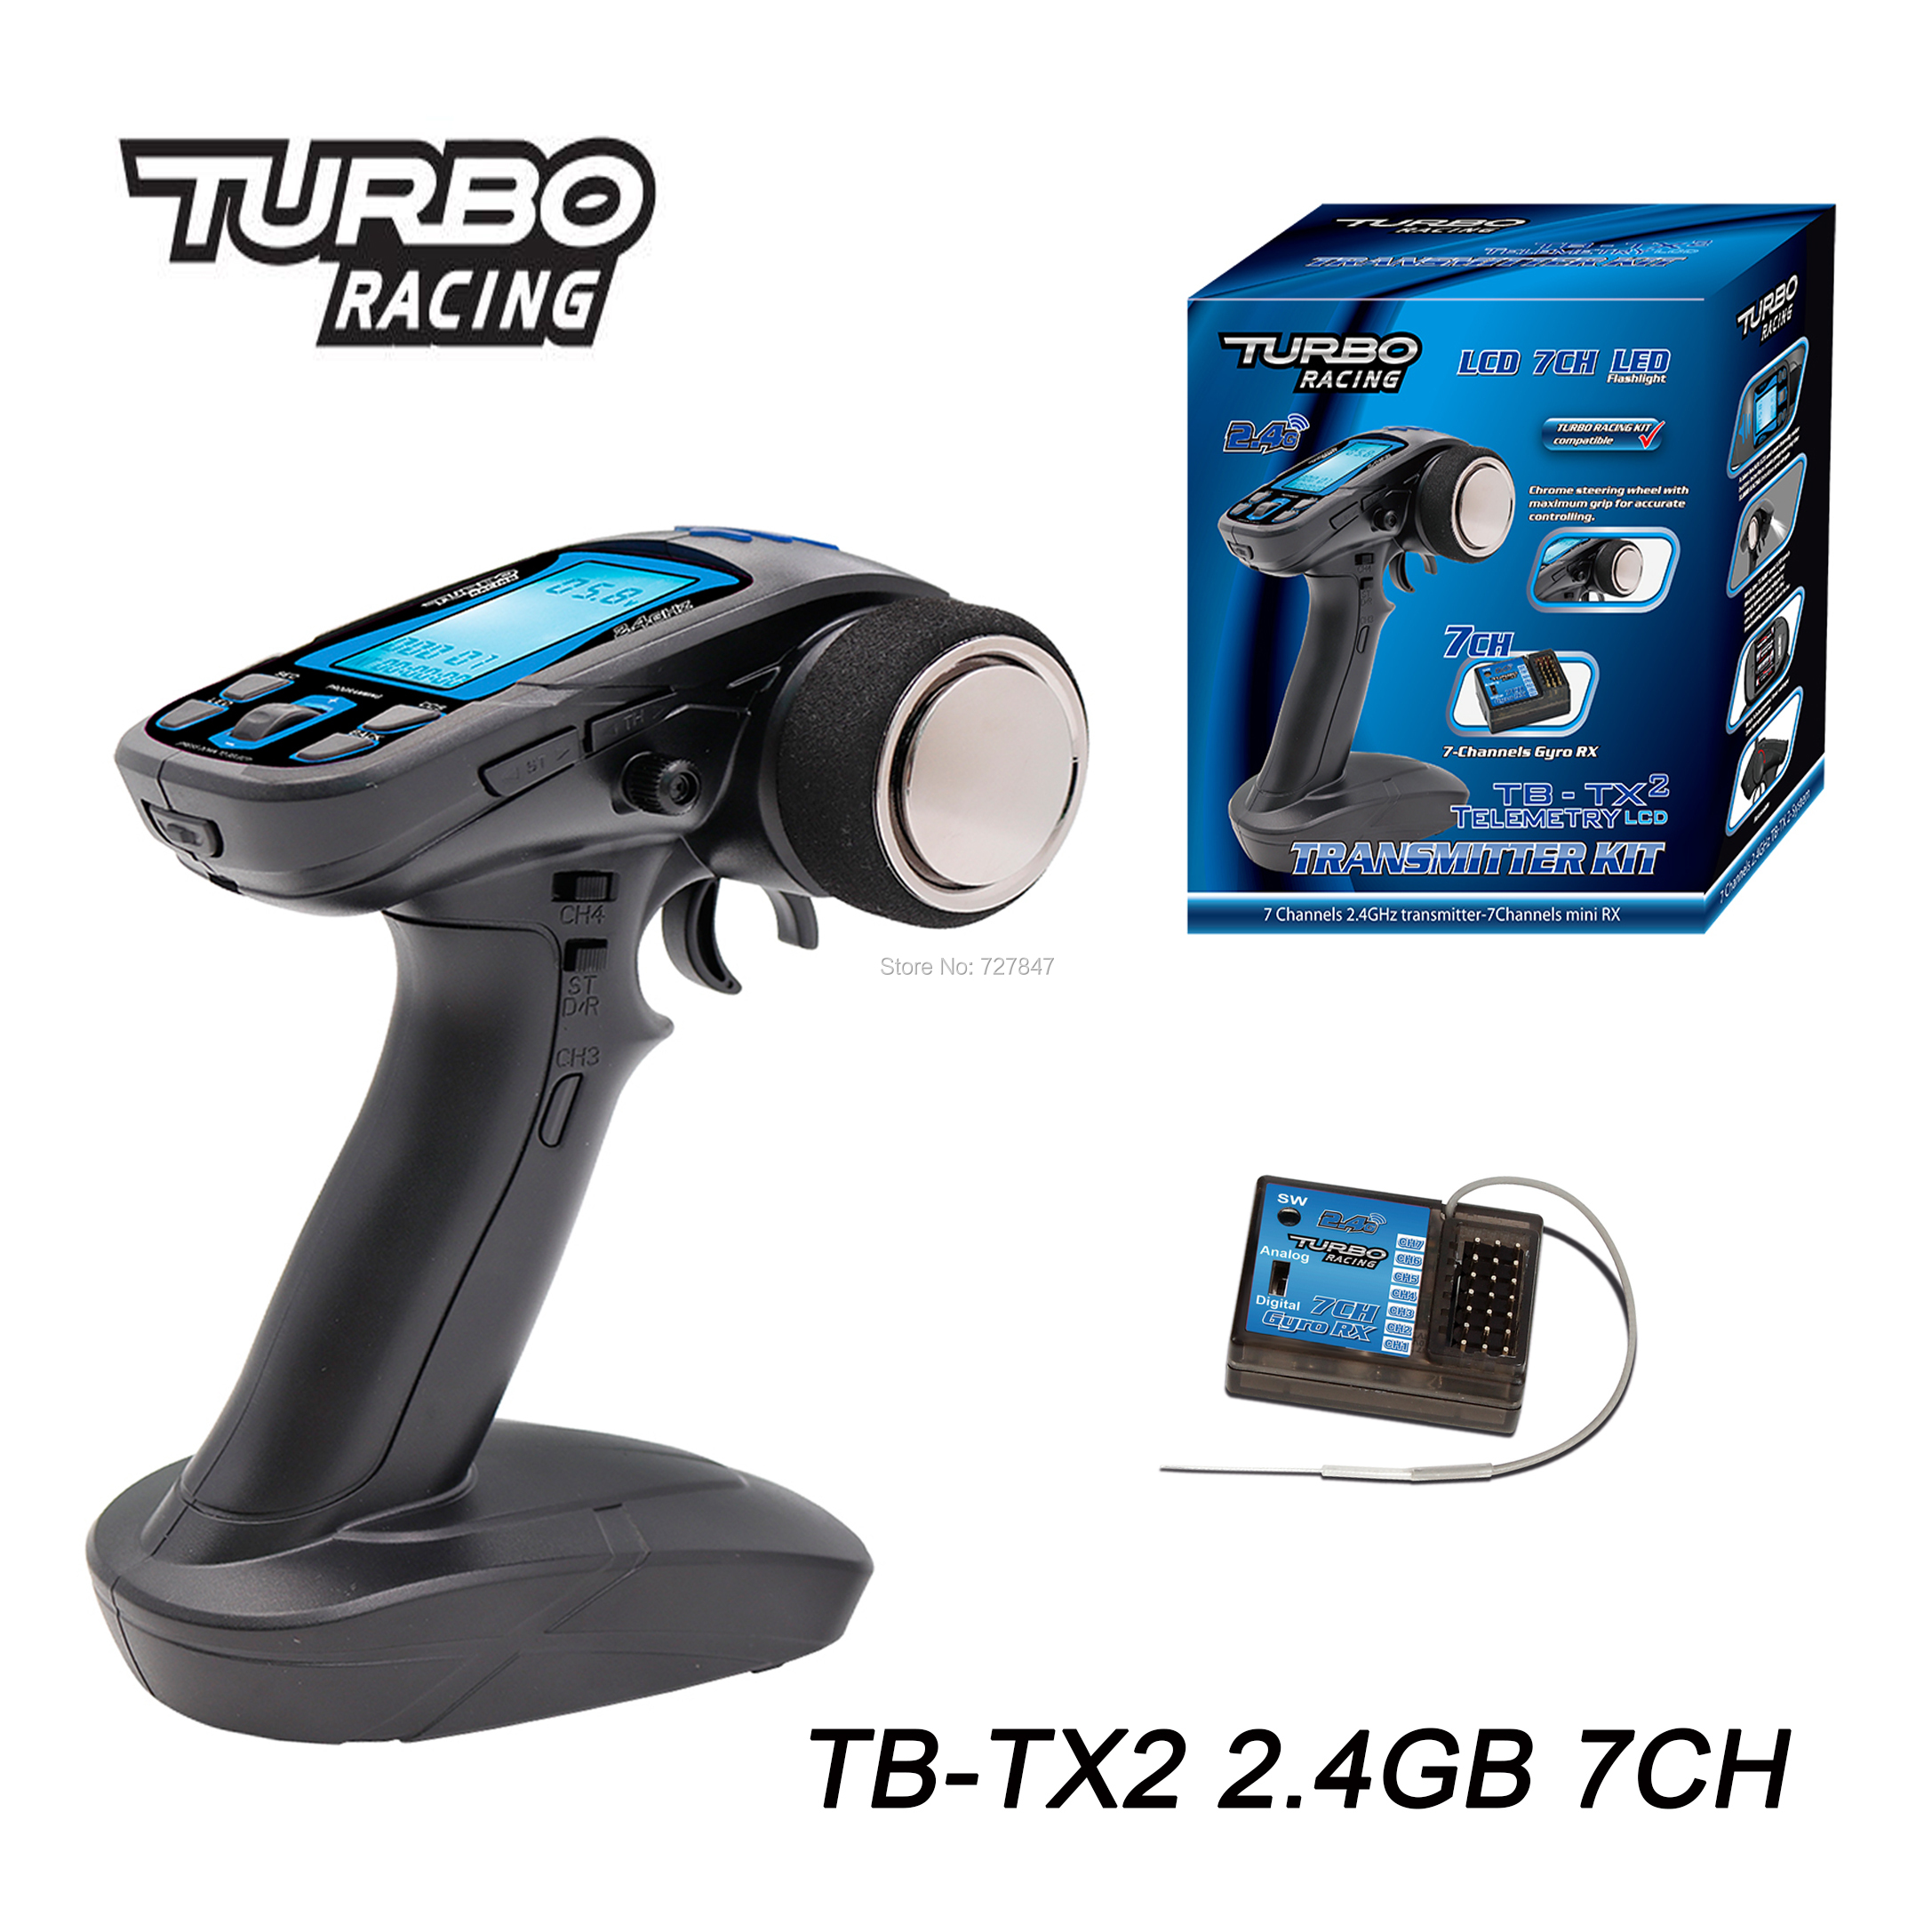 TURBO Racing TB TX2 2 4GHz 7CH Gun RC Radio system controller remote control with Receiver